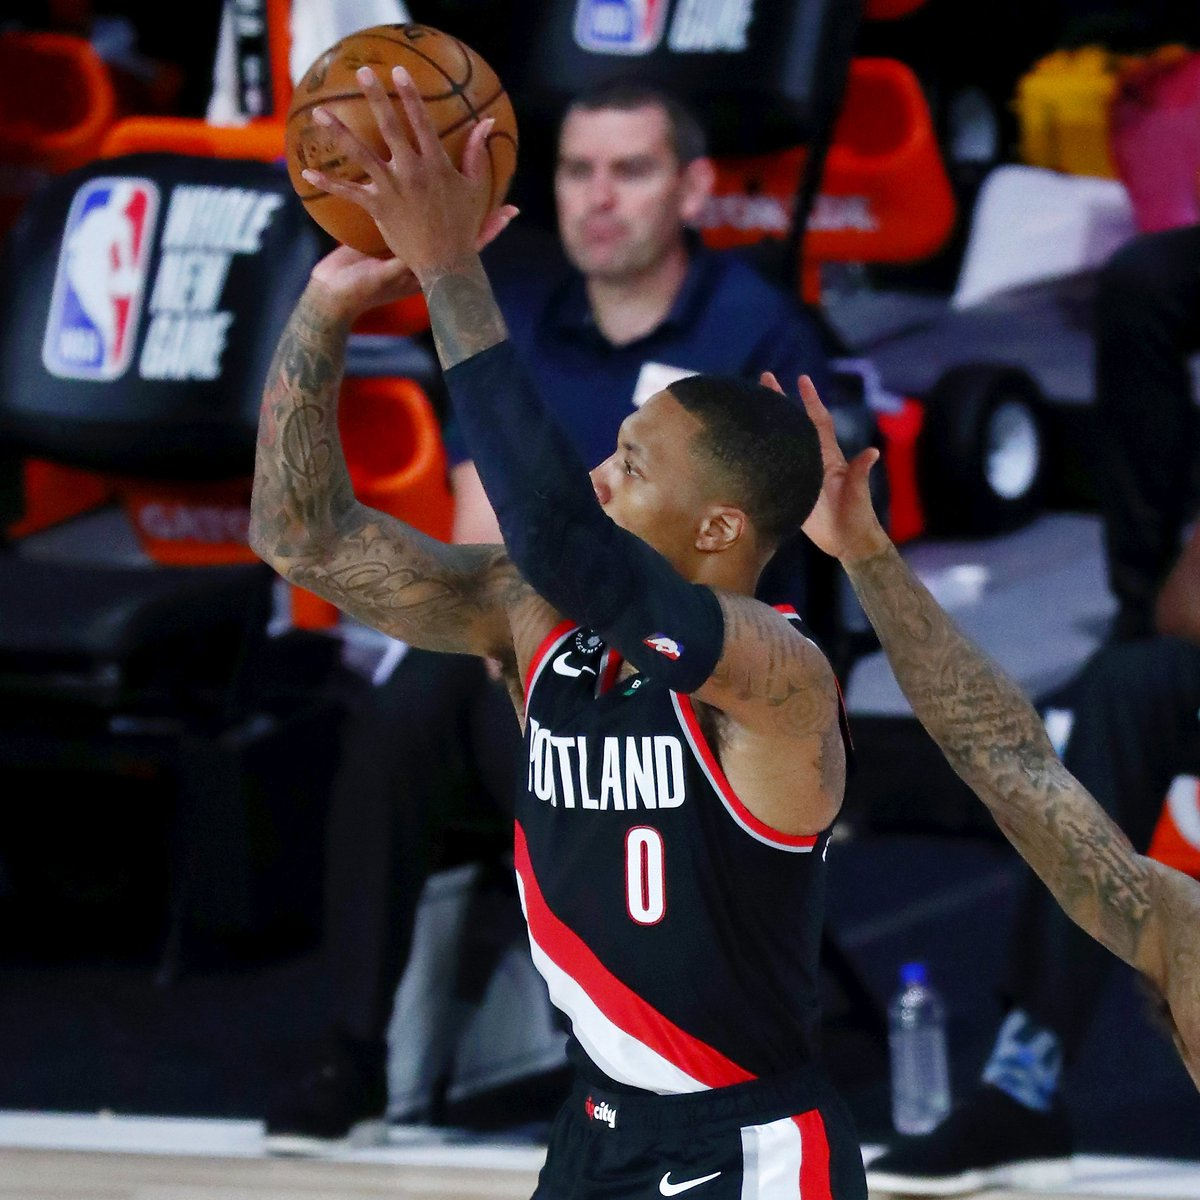 Players with at least three 60+ point games in a season:  ▪️ Damian Lillard (2019-20) ▪️ Wilt Chamberlain (1961-62, 1962-63) https://t.co/7RPbIXy7dW